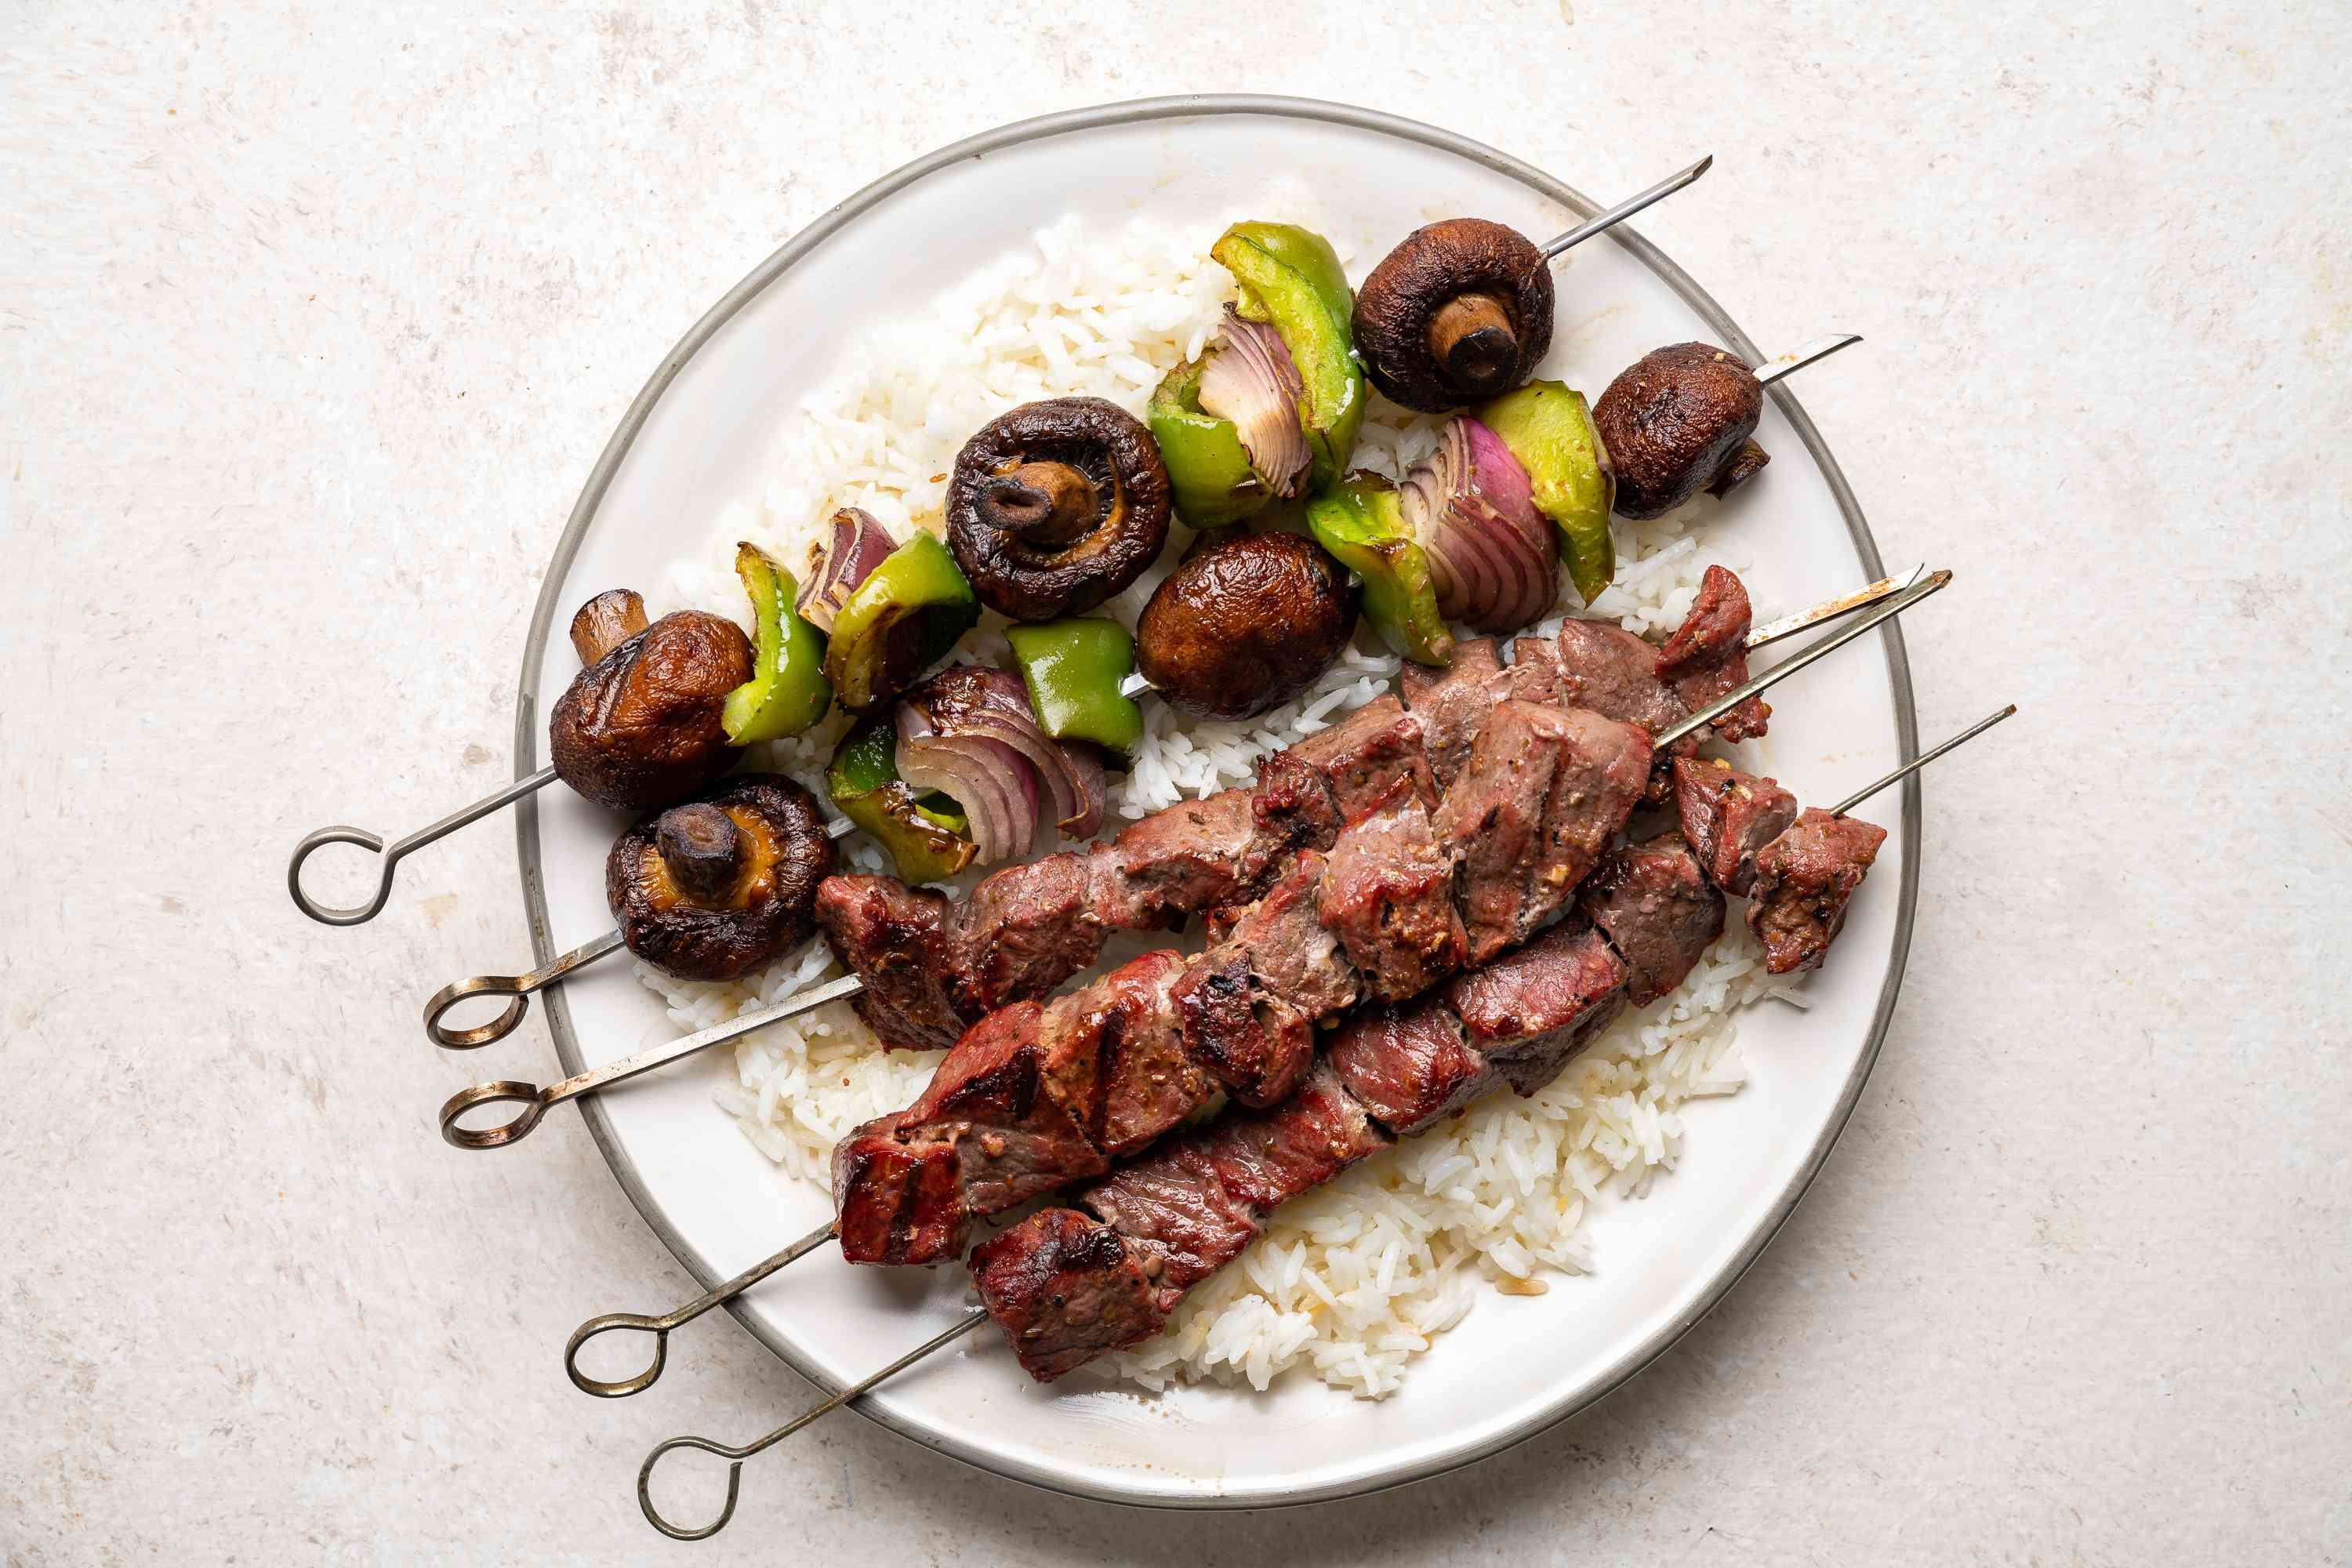 Middle Eastern Beef Shish Kebabs served on rice